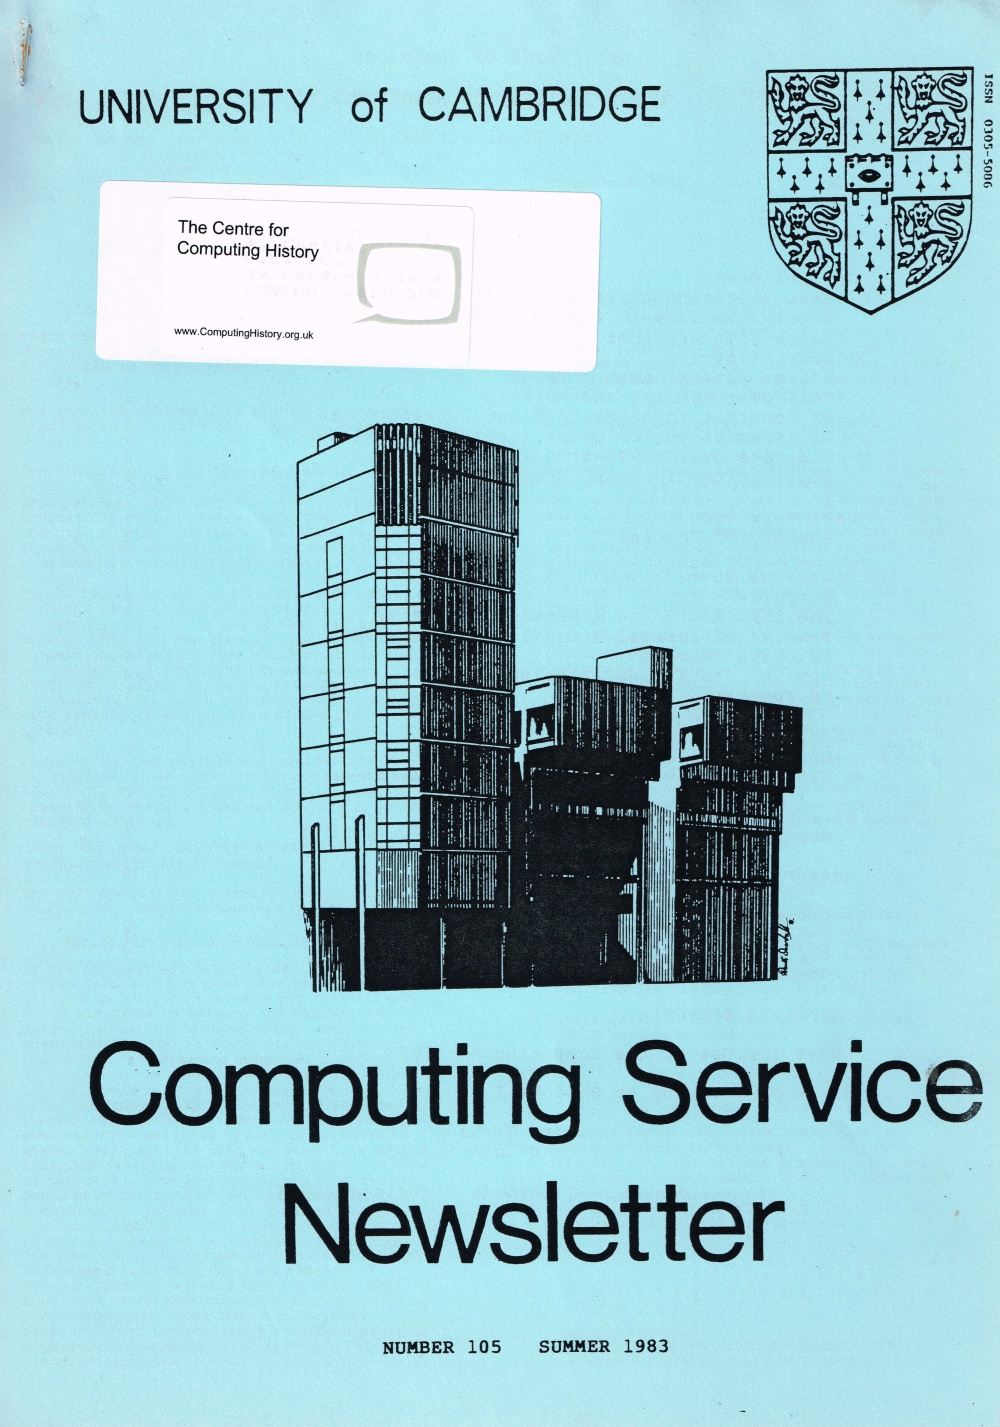 Article: University of Cambridge Computing Service Summer 1983 Newsletter 105